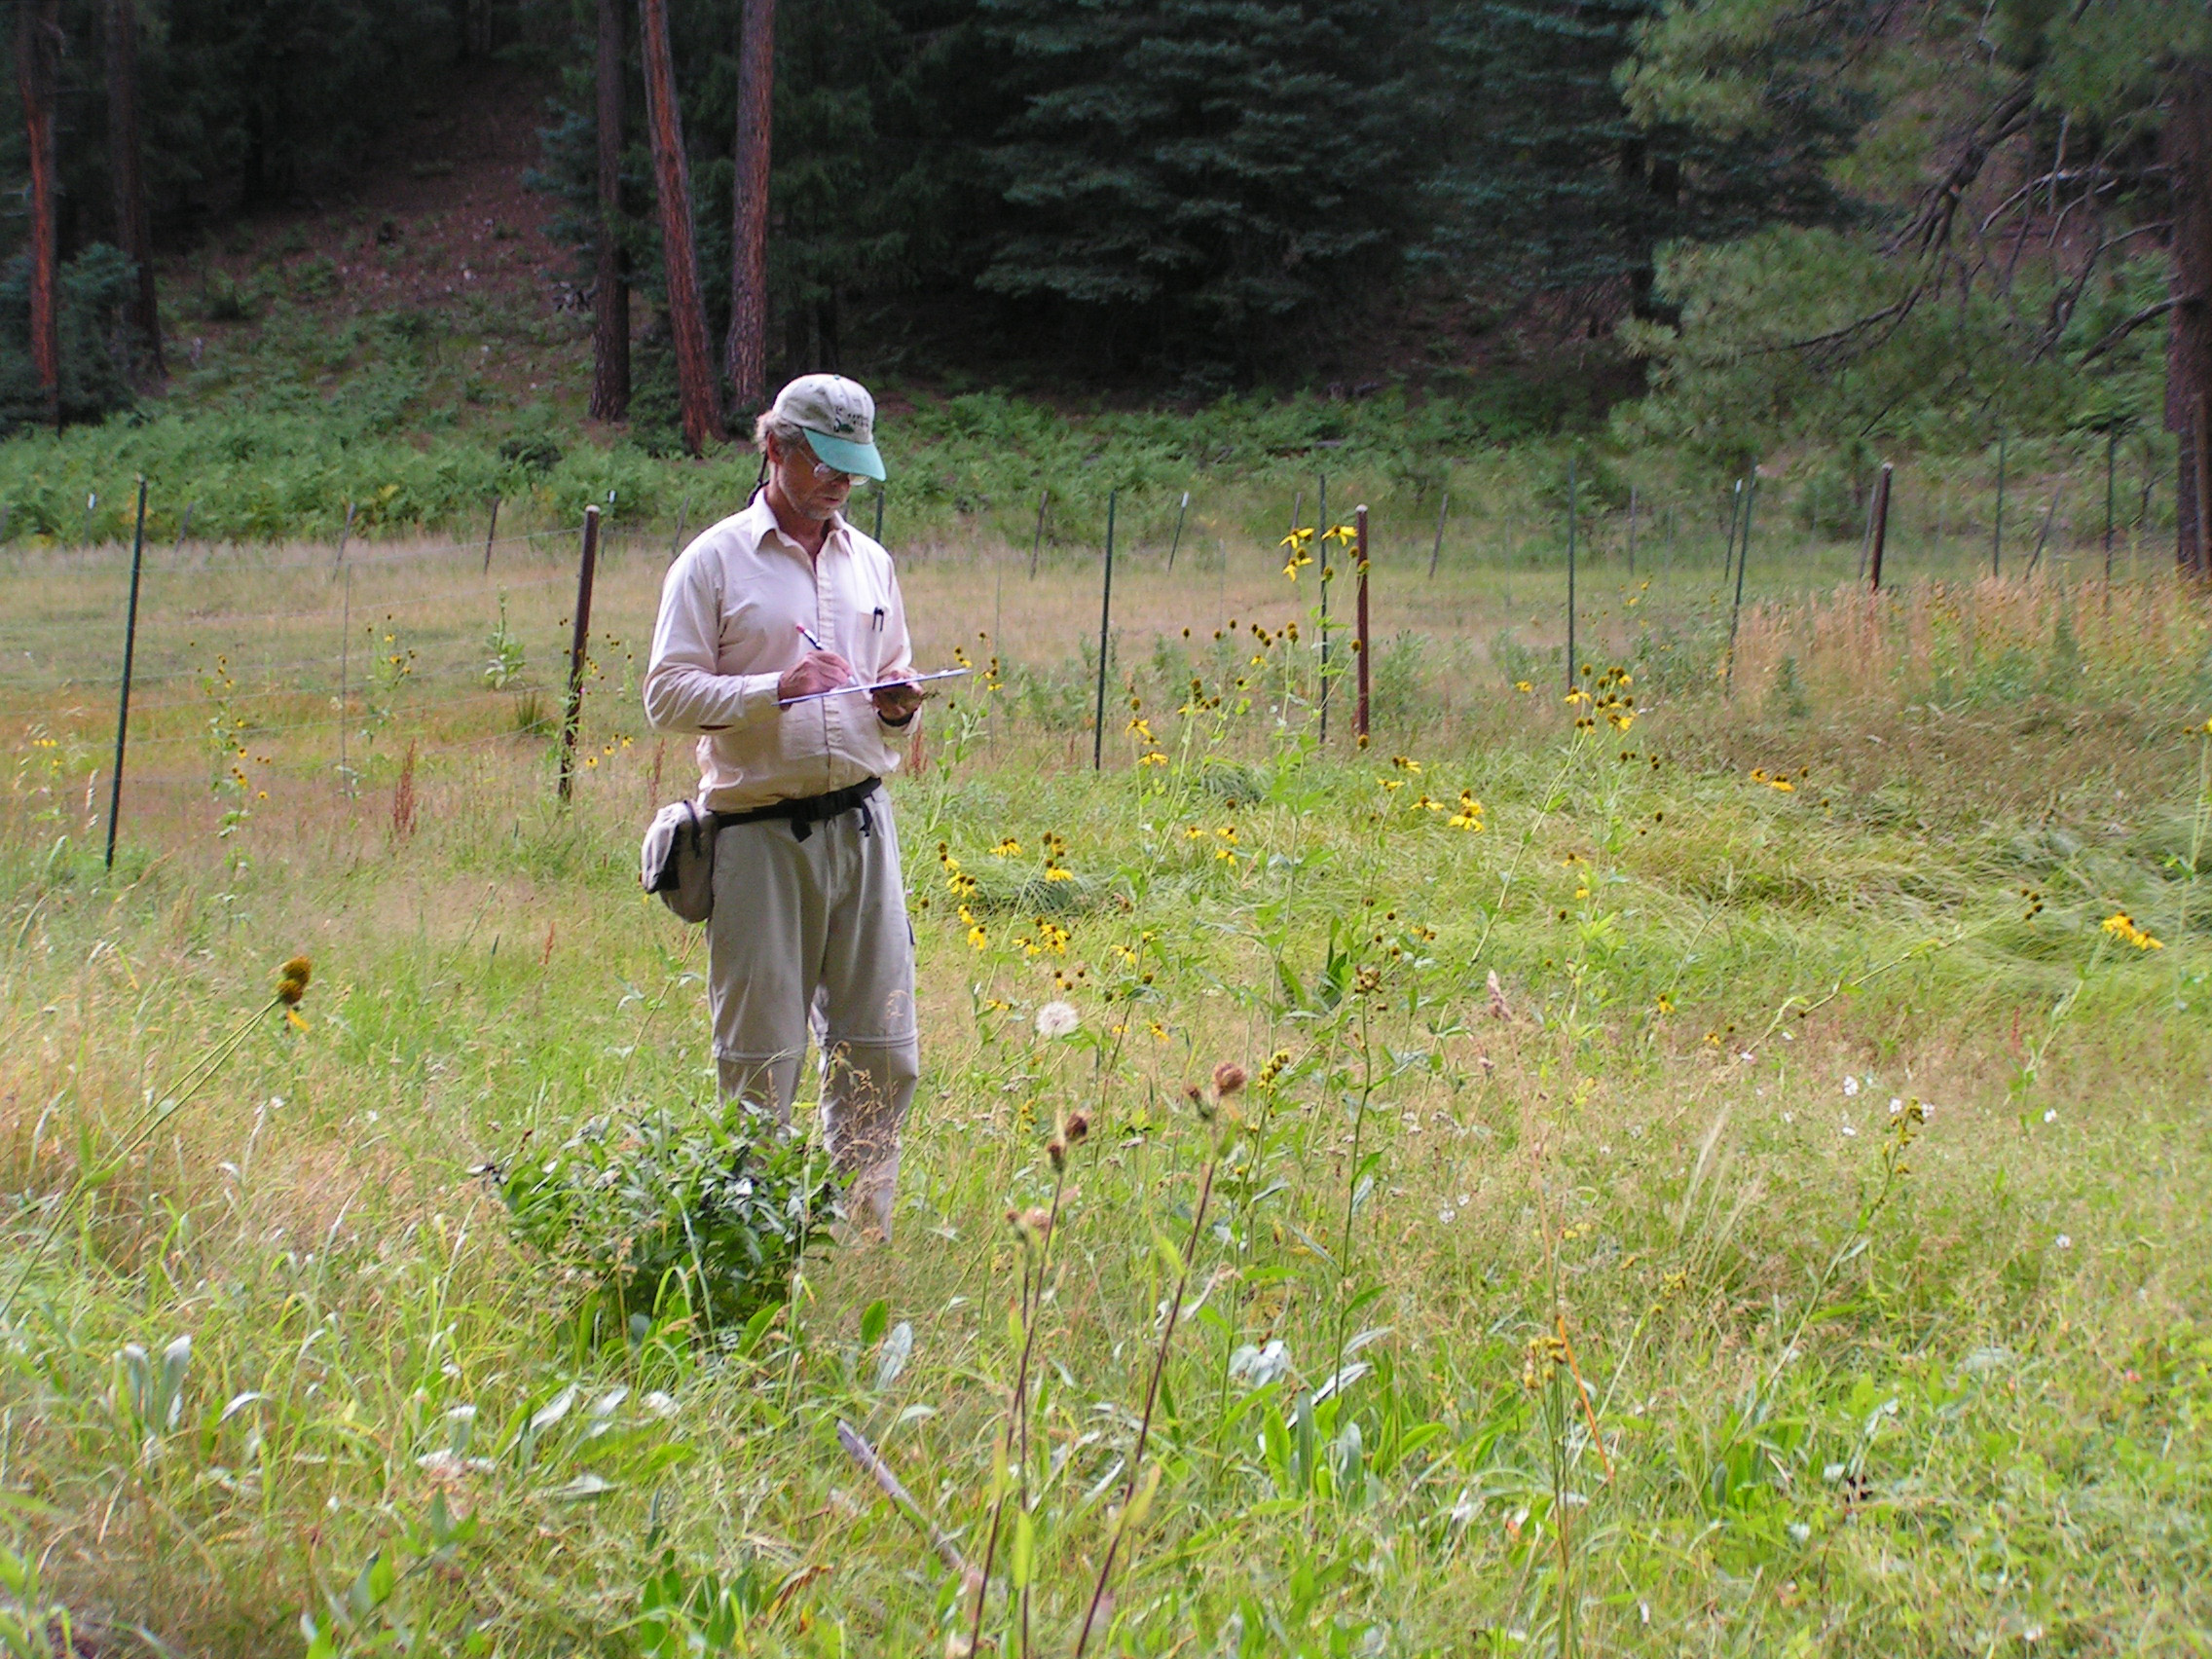 Fig. 2: Dr. Larry Stevens collecting inventory data, Merritt Spring, Coconino National Forest, Arizona